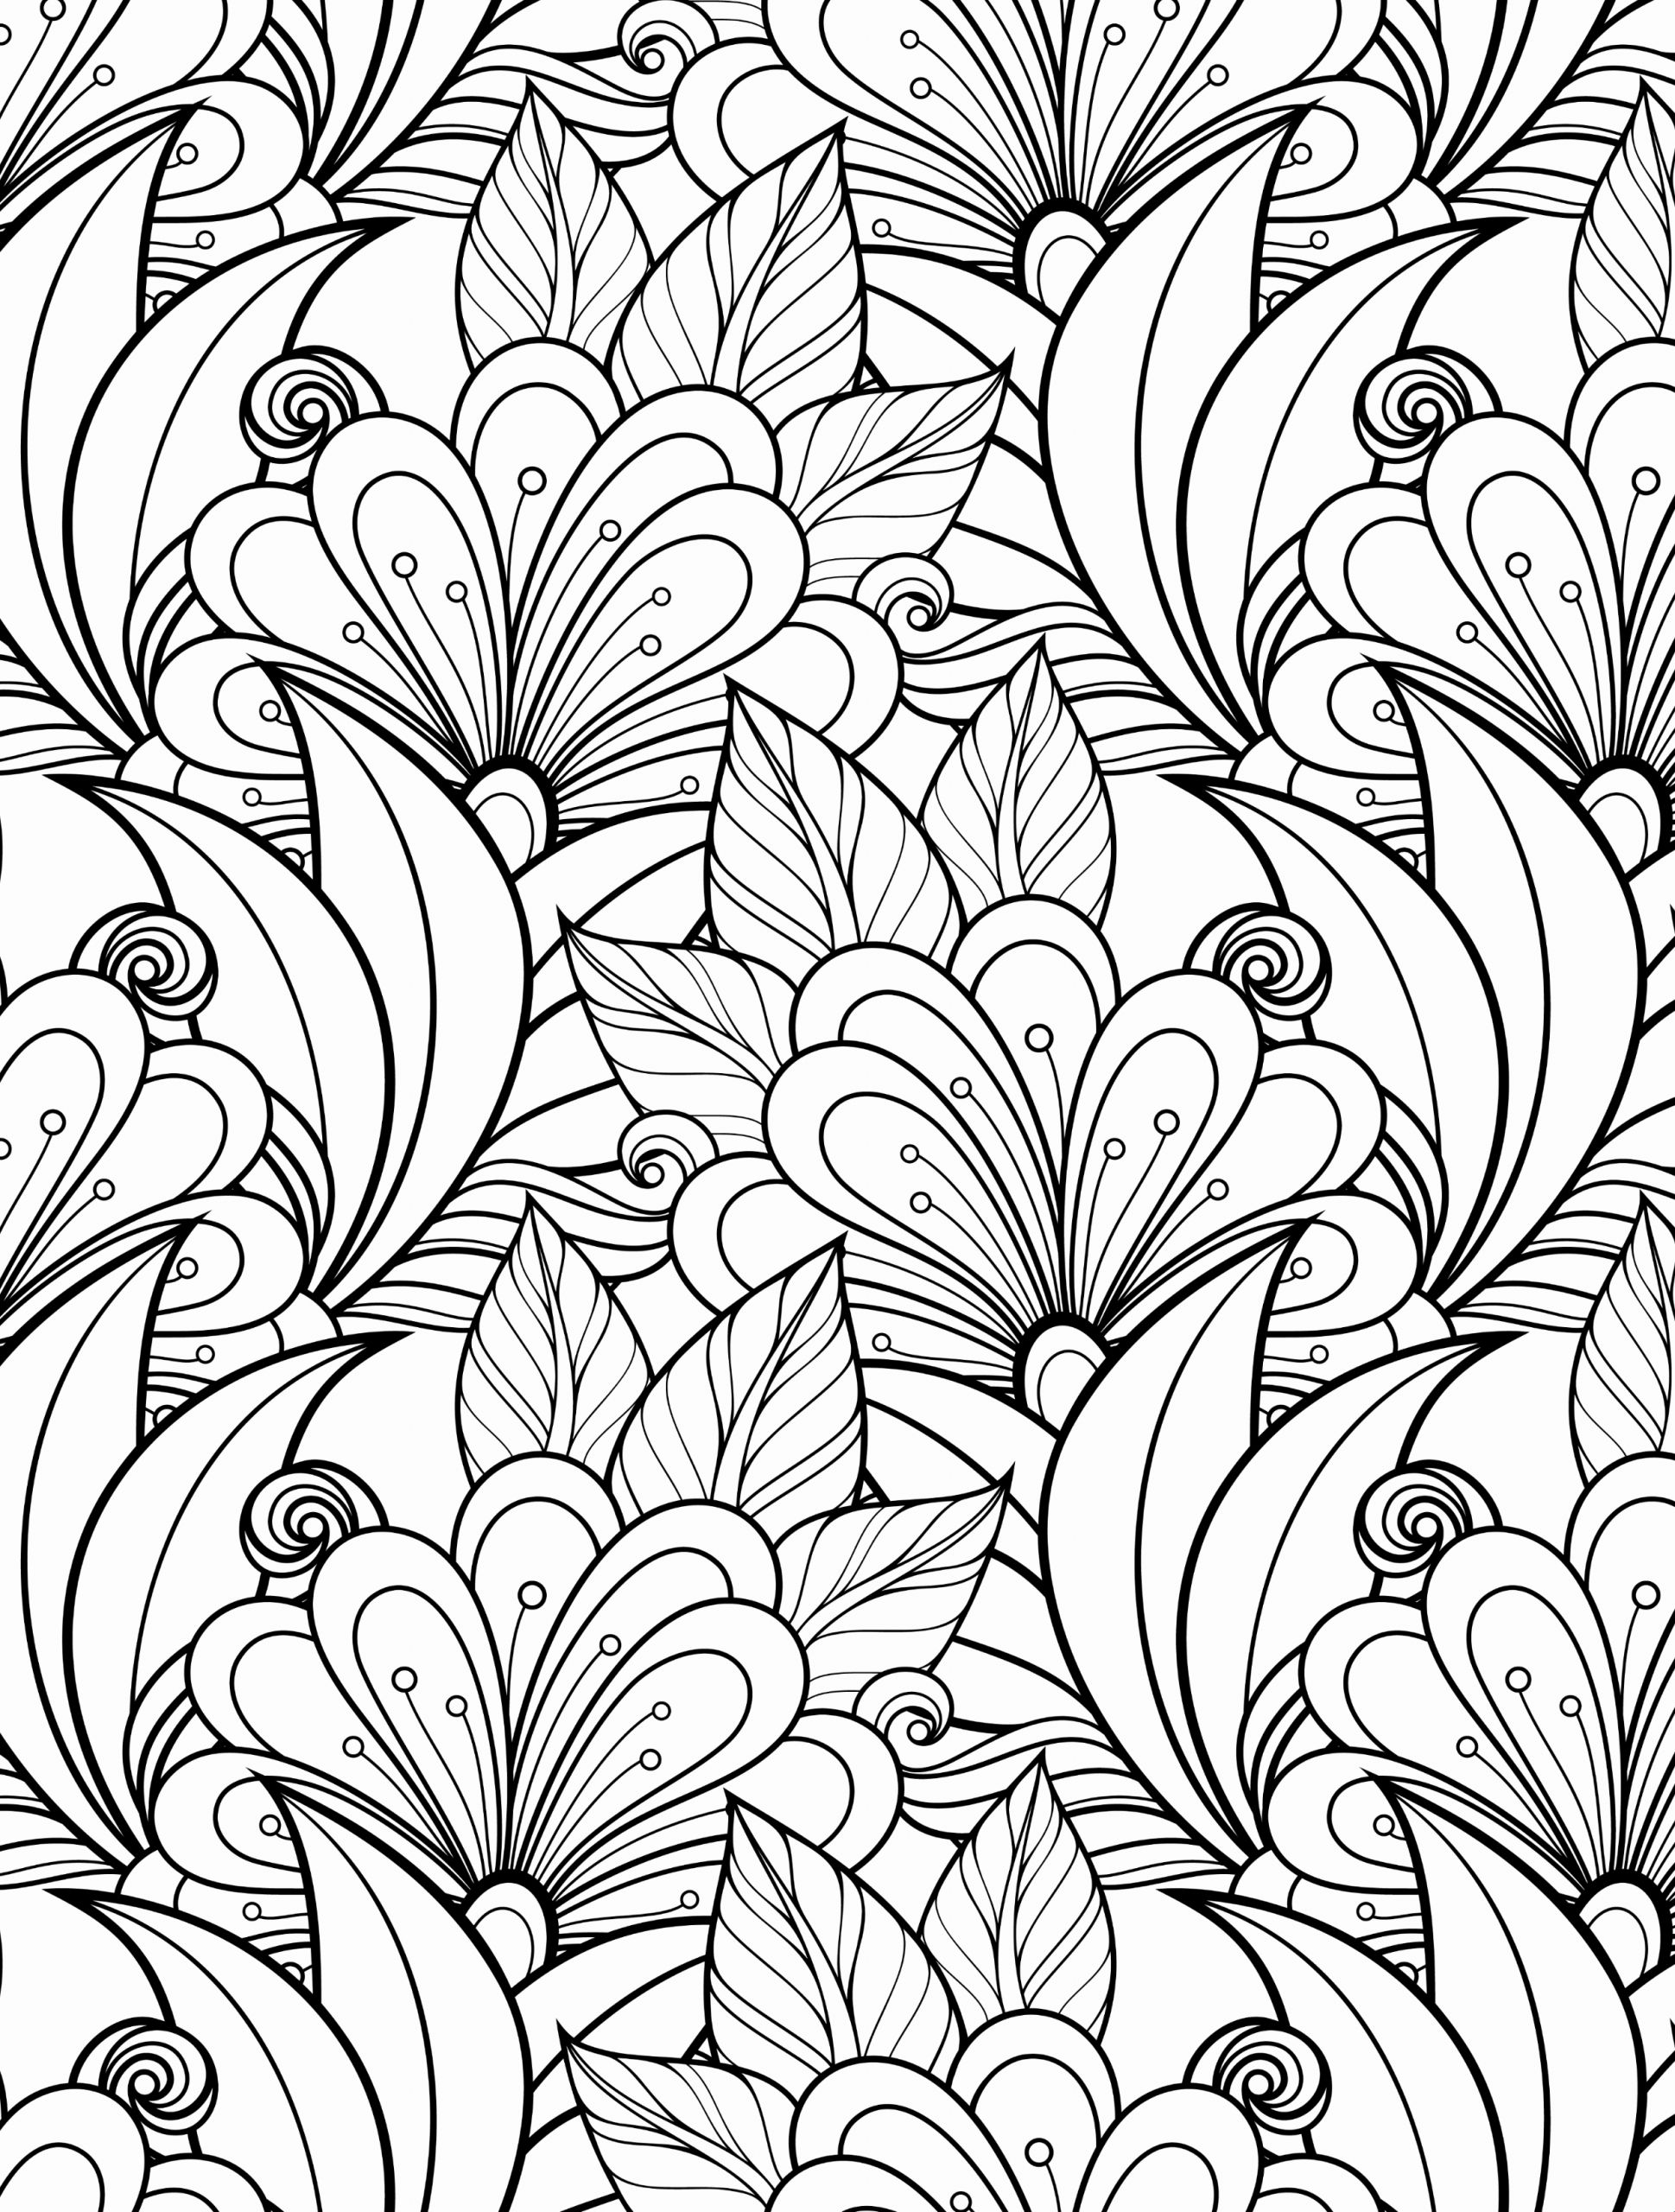 A Coloring Sheets Printable or Floral Coloring Pages for Adults Best Coloring Pages for Kids